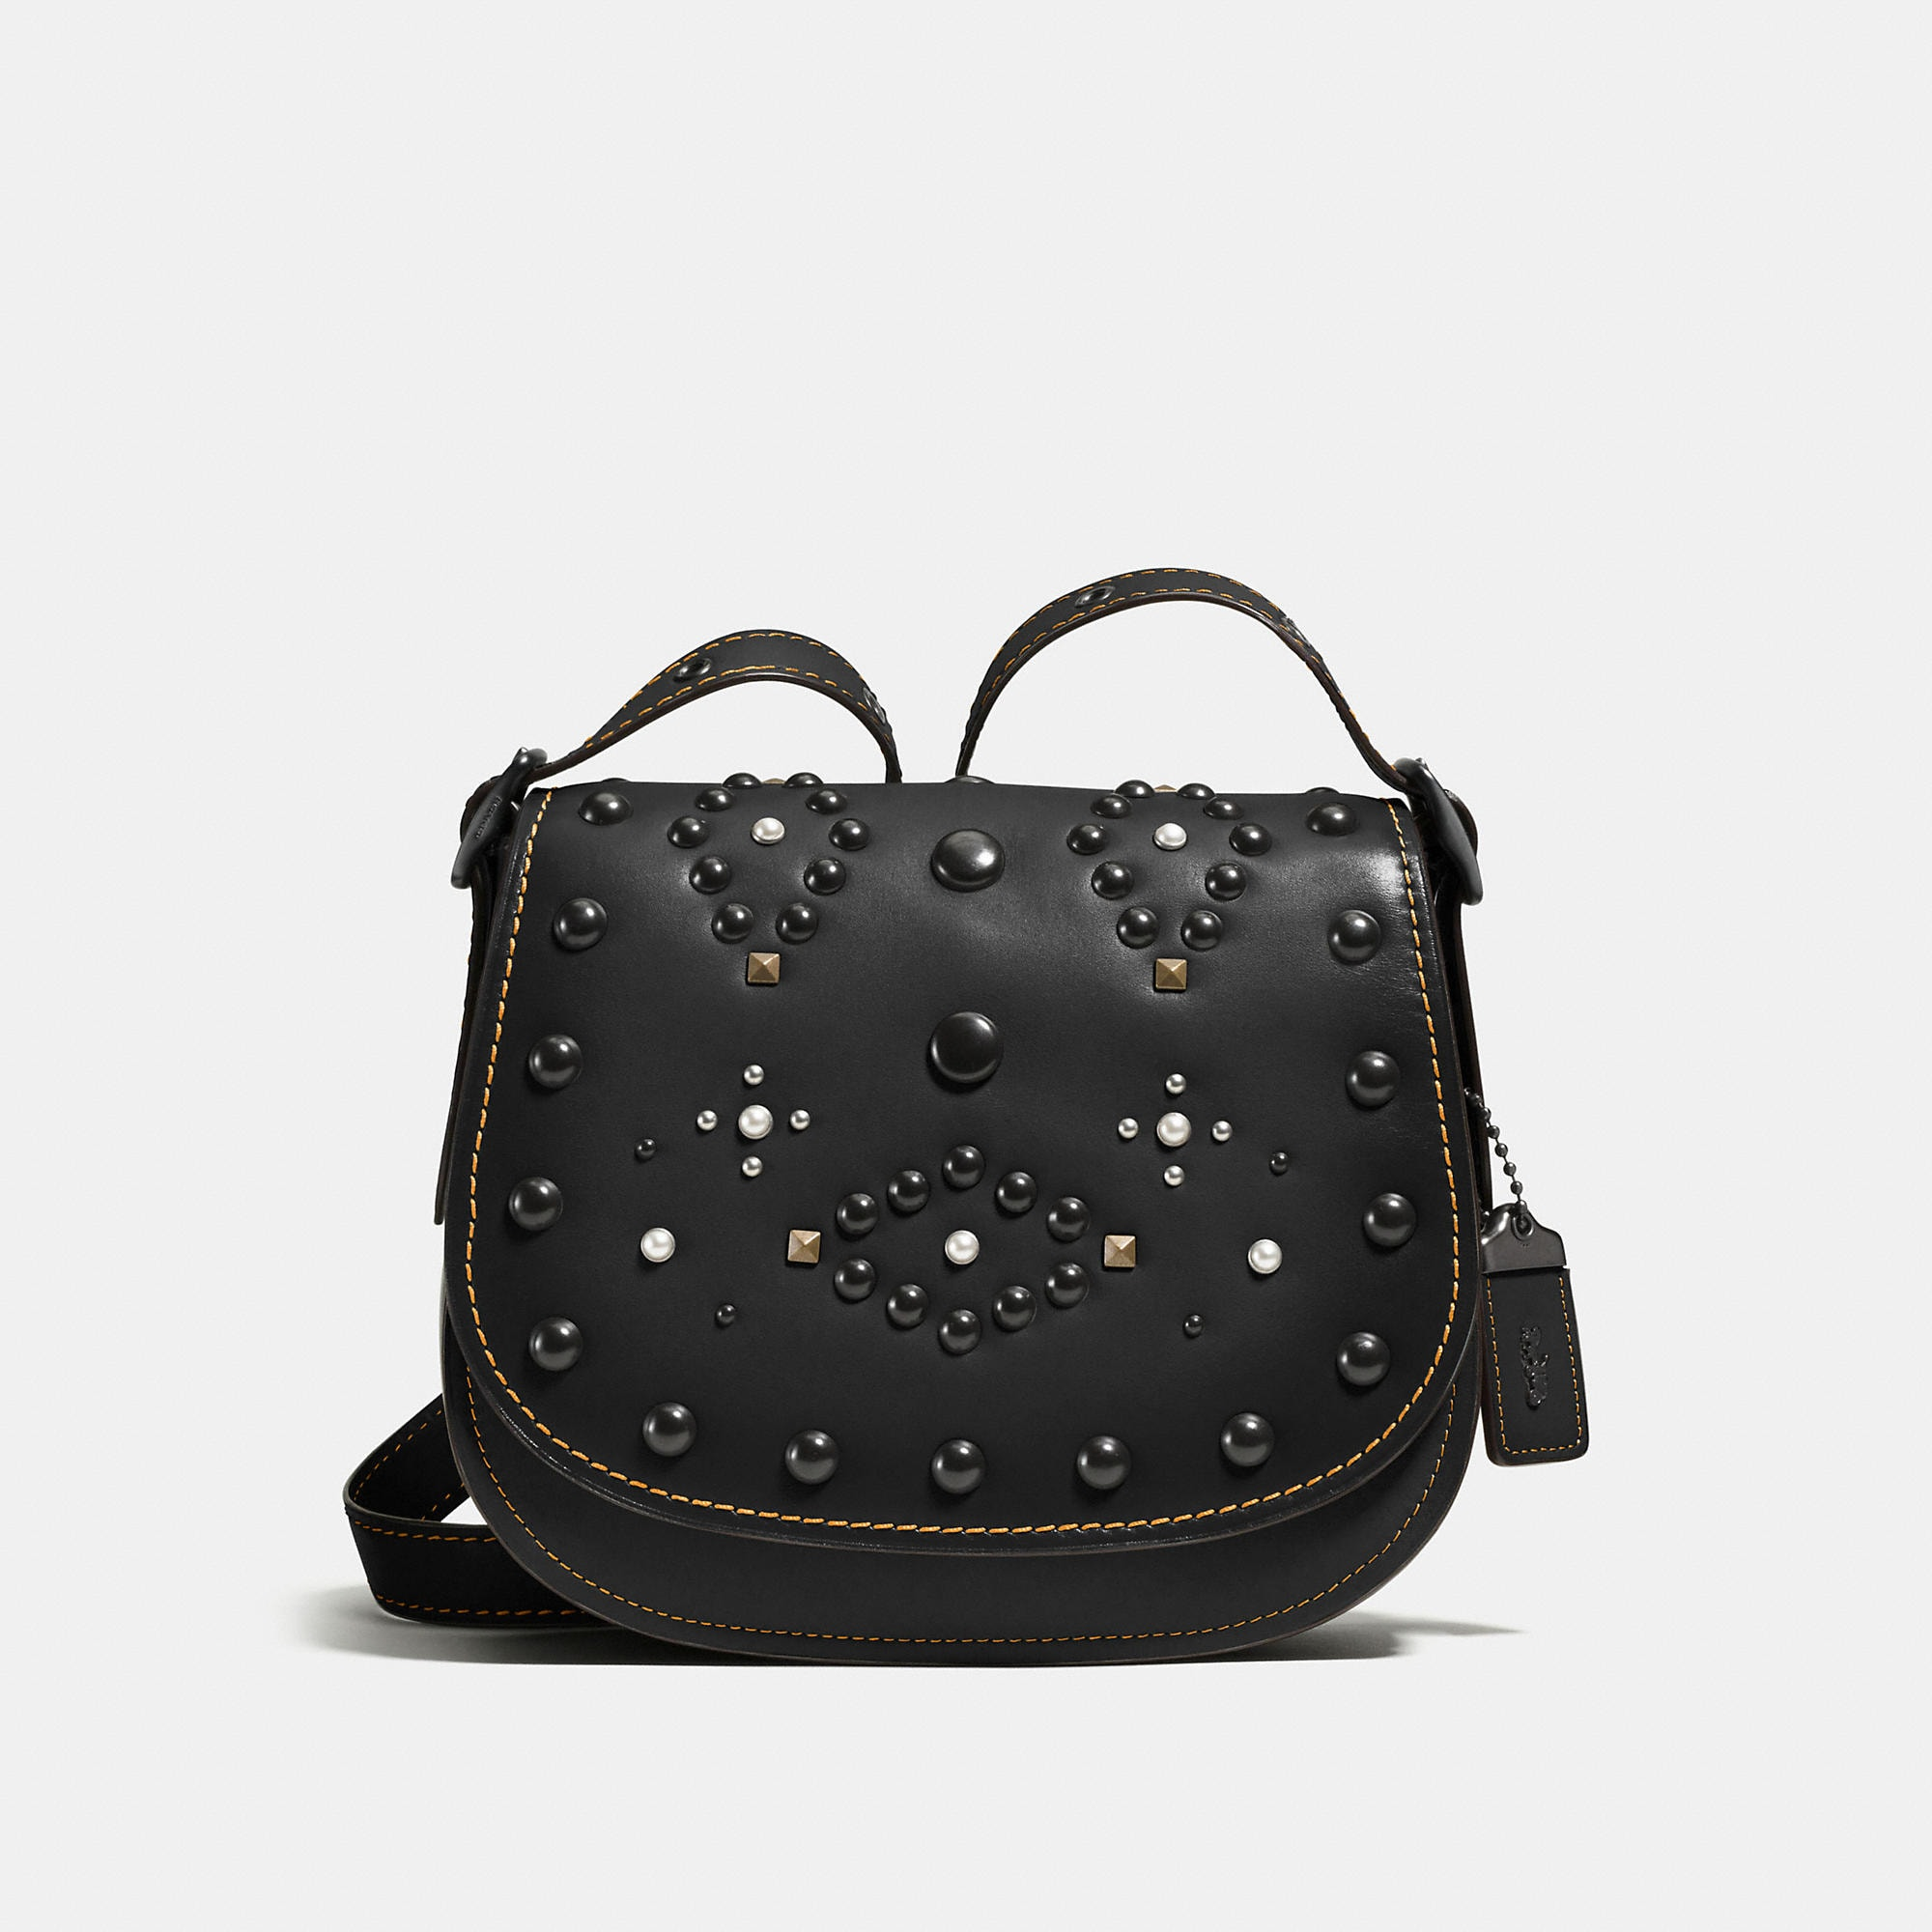 Coach Western Rivets Saddle Bag 23 In Glovetanned Leather